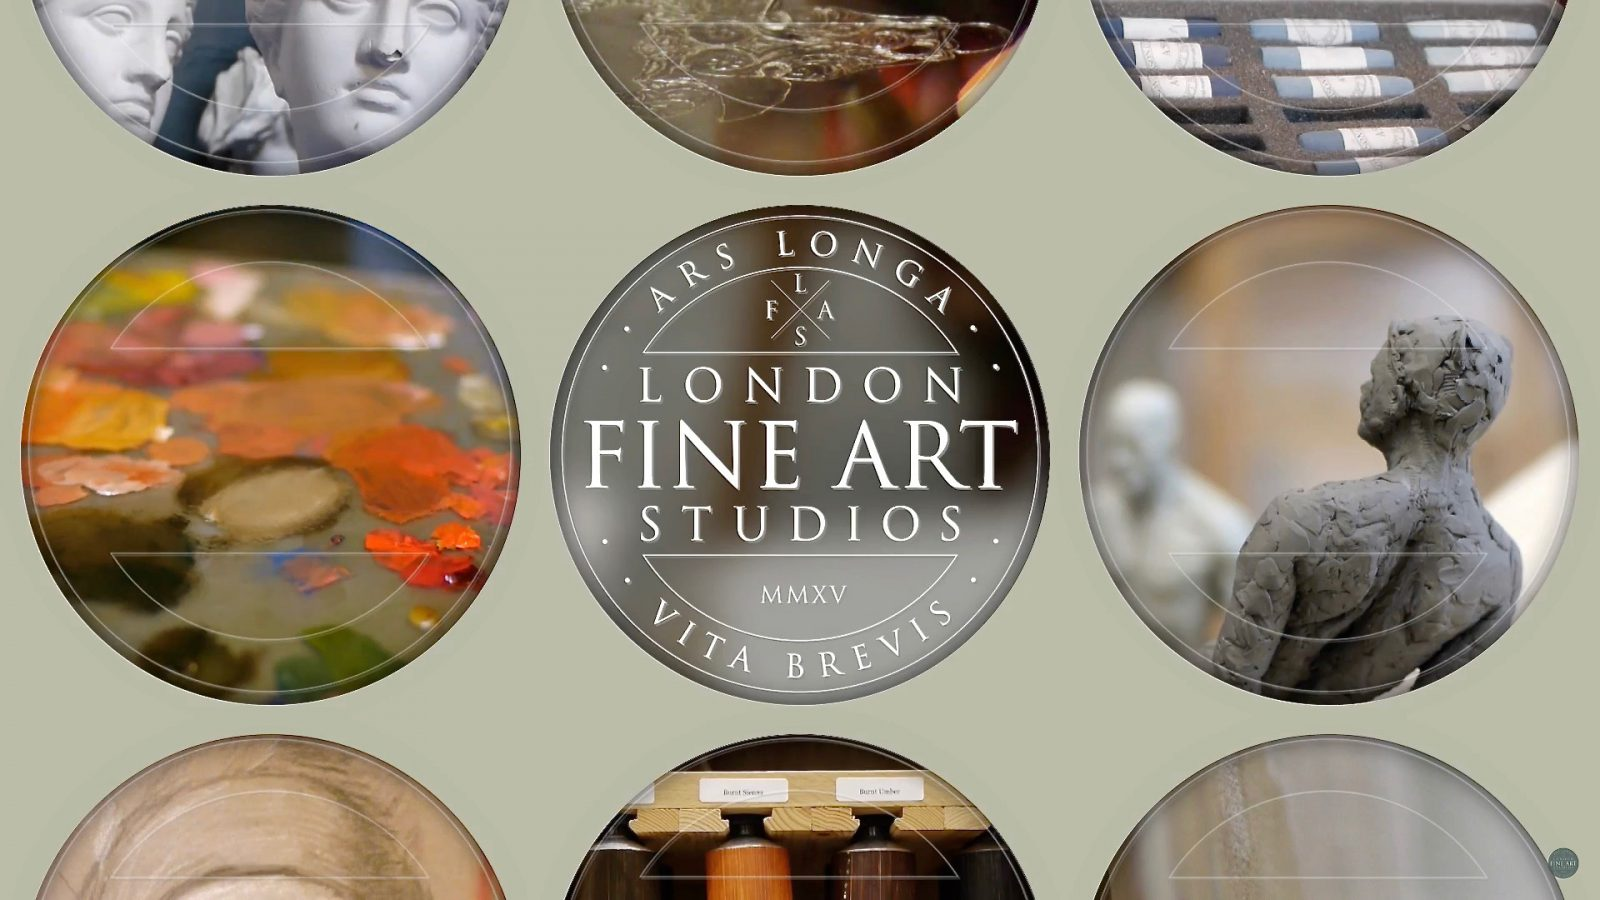 London Fine Art Studios: An insight